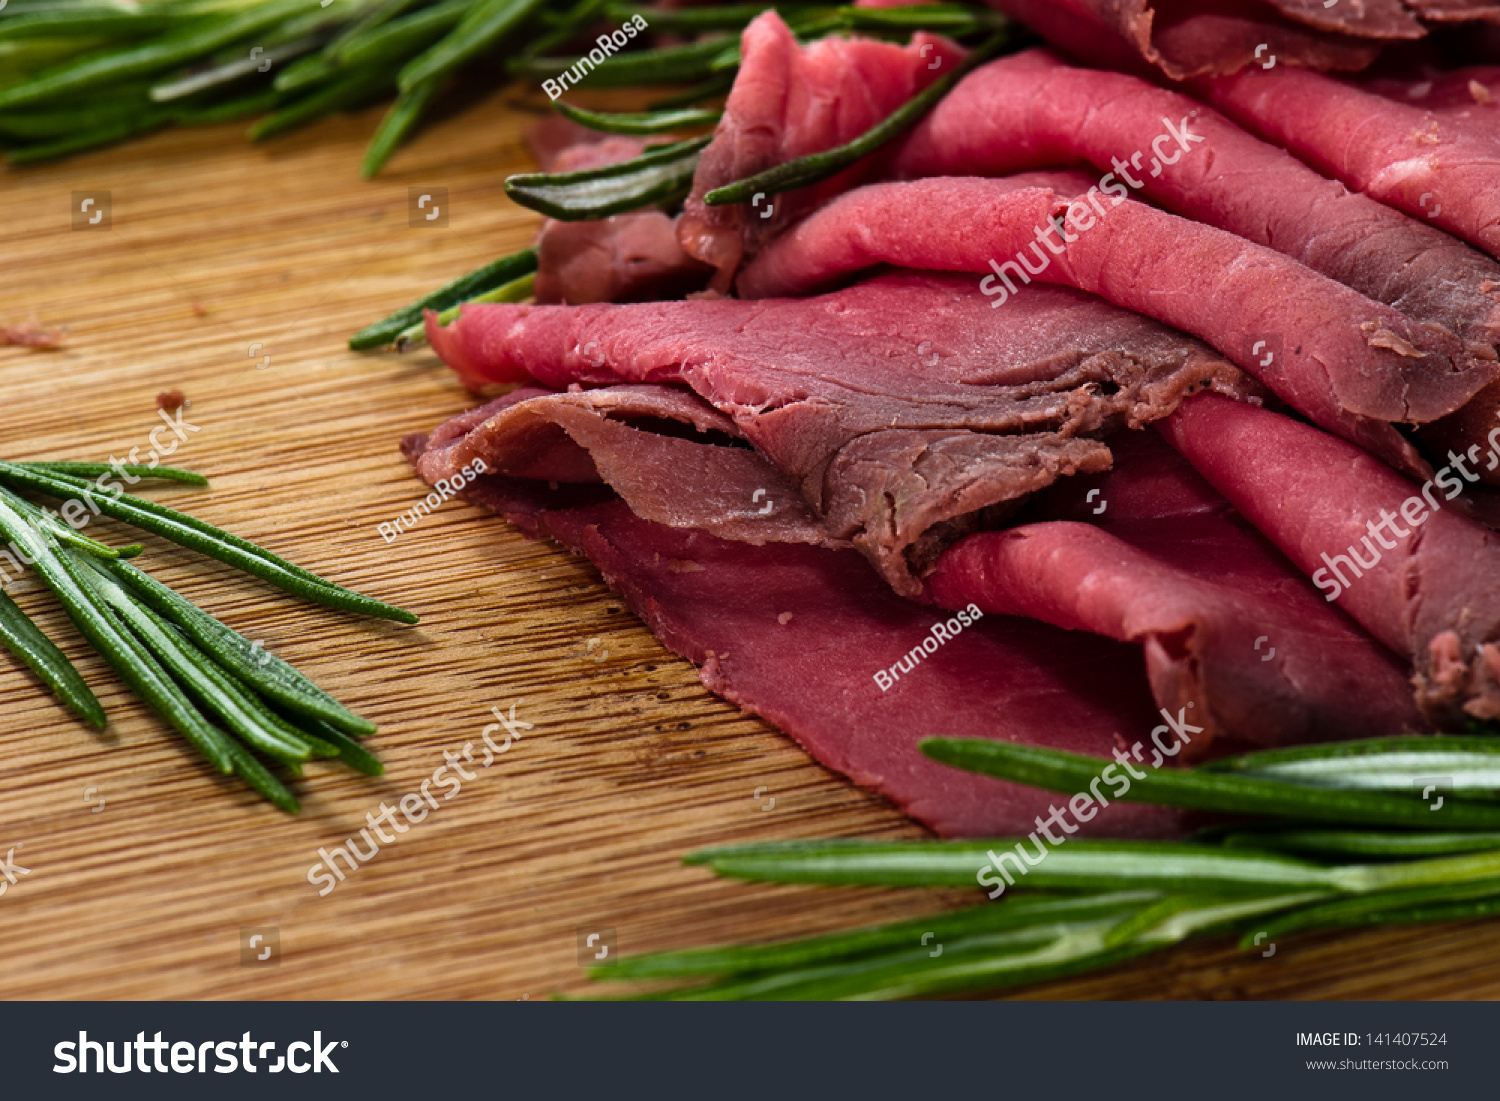 Sliced roast beef package - Slices Of Roast Beef With Cheese And Rosemary On Wooden Board